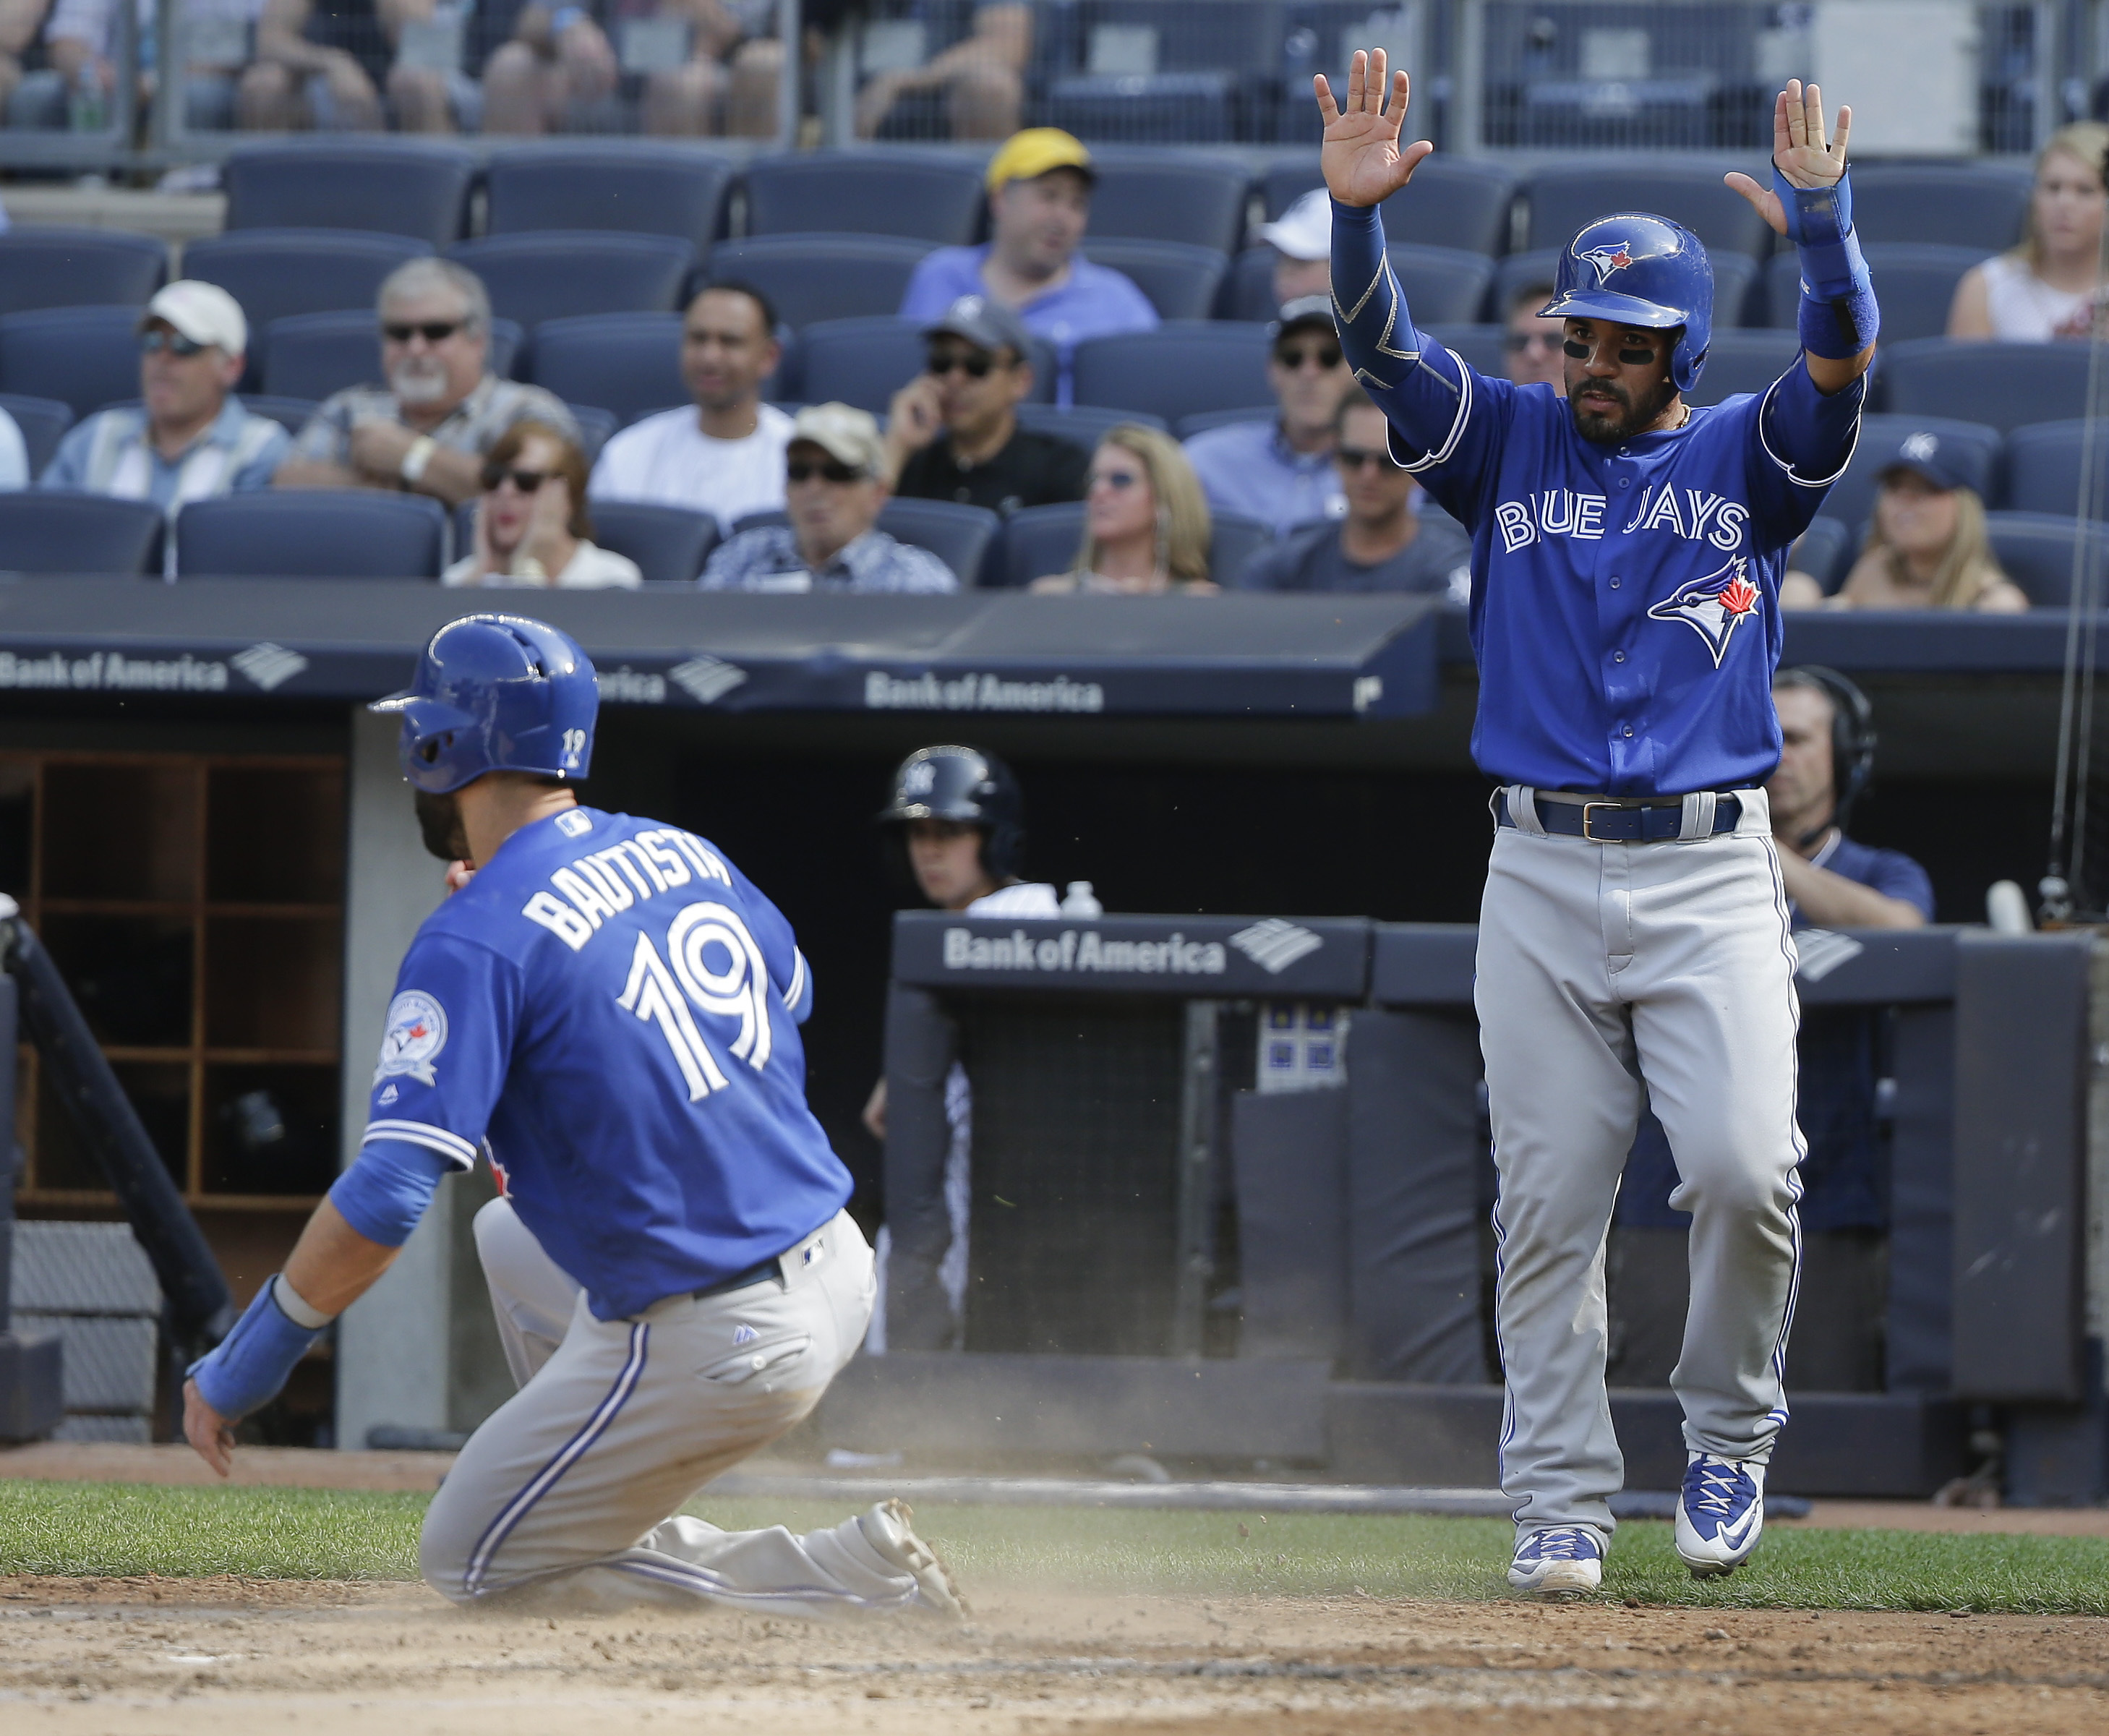 Toronto Blue Jays' Devon Travis, right, raises his hands as Jose Bautista (19) scores on a base hit by designated hitter Edwin Encarnacion during the third inning of a baseball game against the New York Yankees, Thursday, May 26, 2016, in New York. (AP Ph